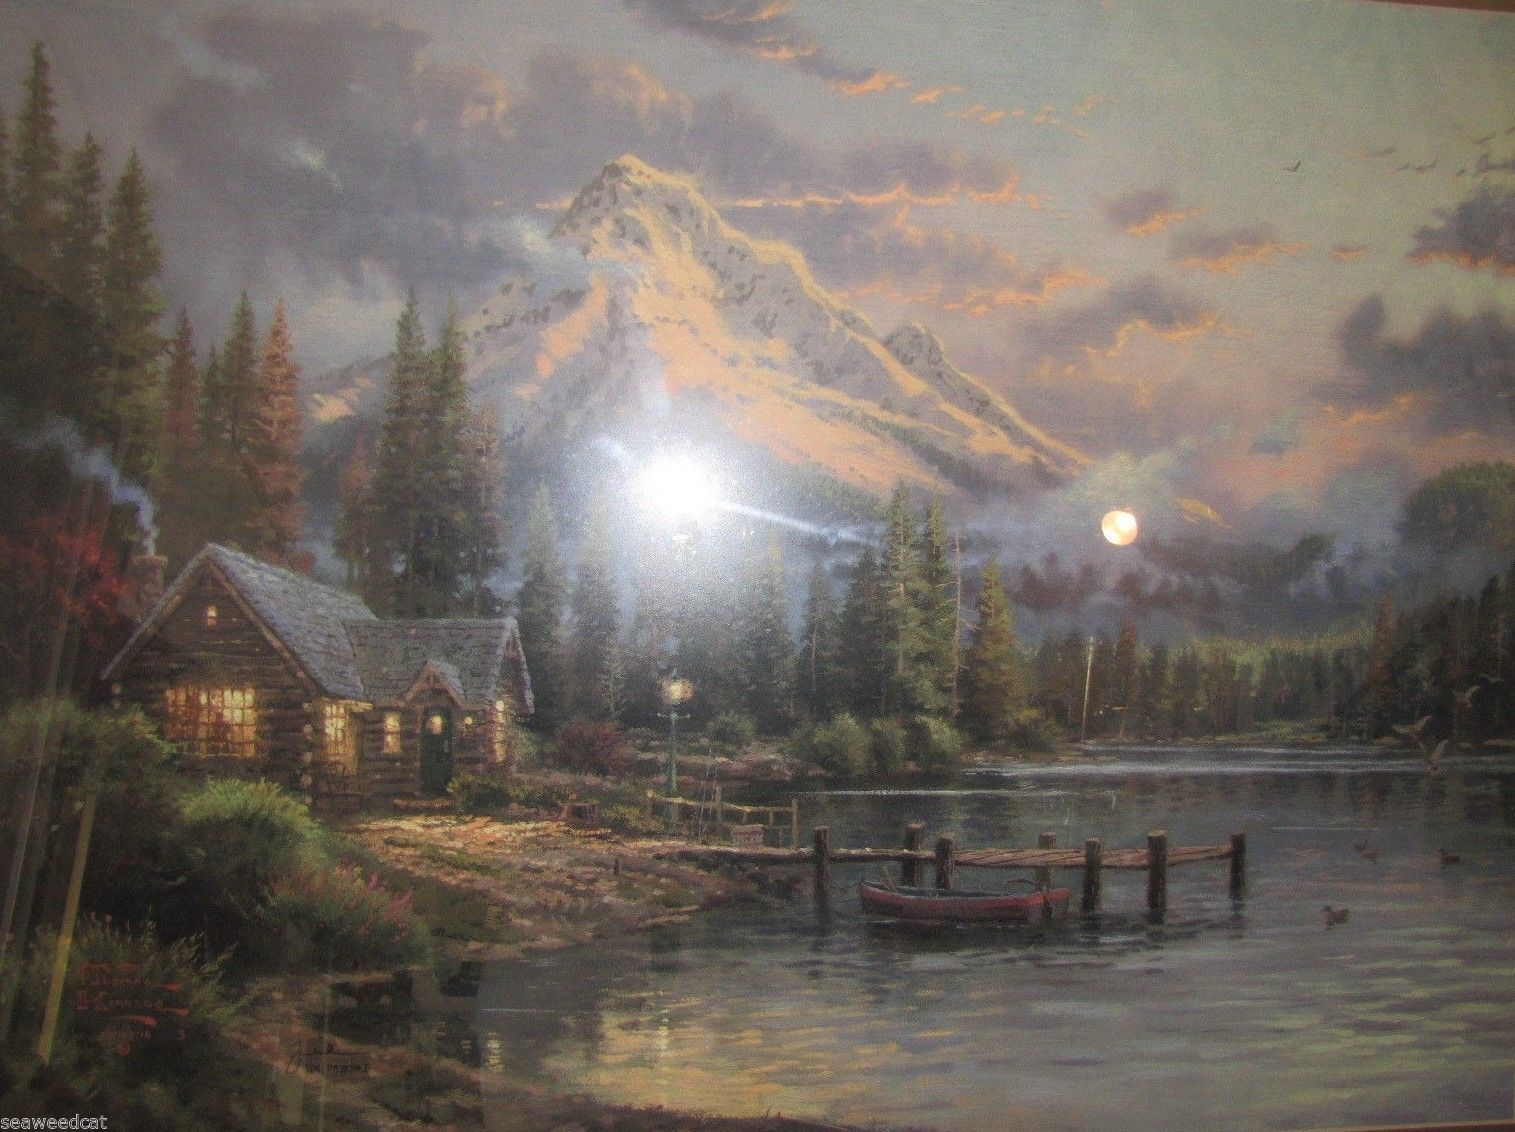 Thomas Kinkade Lakeside Hideaway 18x24 Low Number w/COA!! Absolutely Stunning!